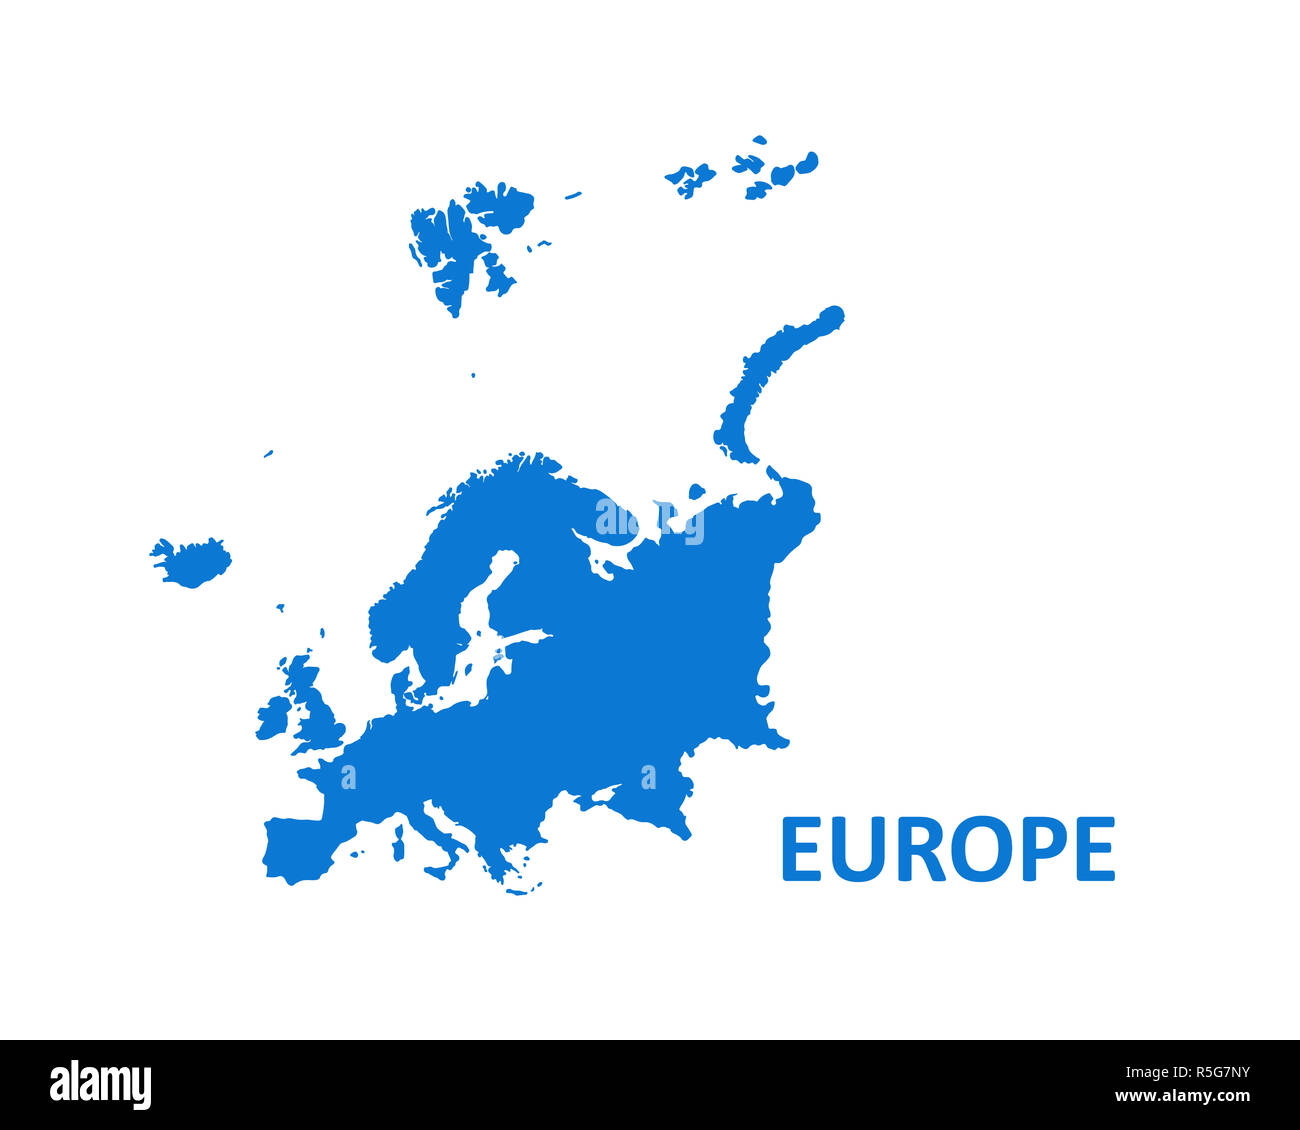 Europe Continent Map. vector illustration on white background. - Stock Image